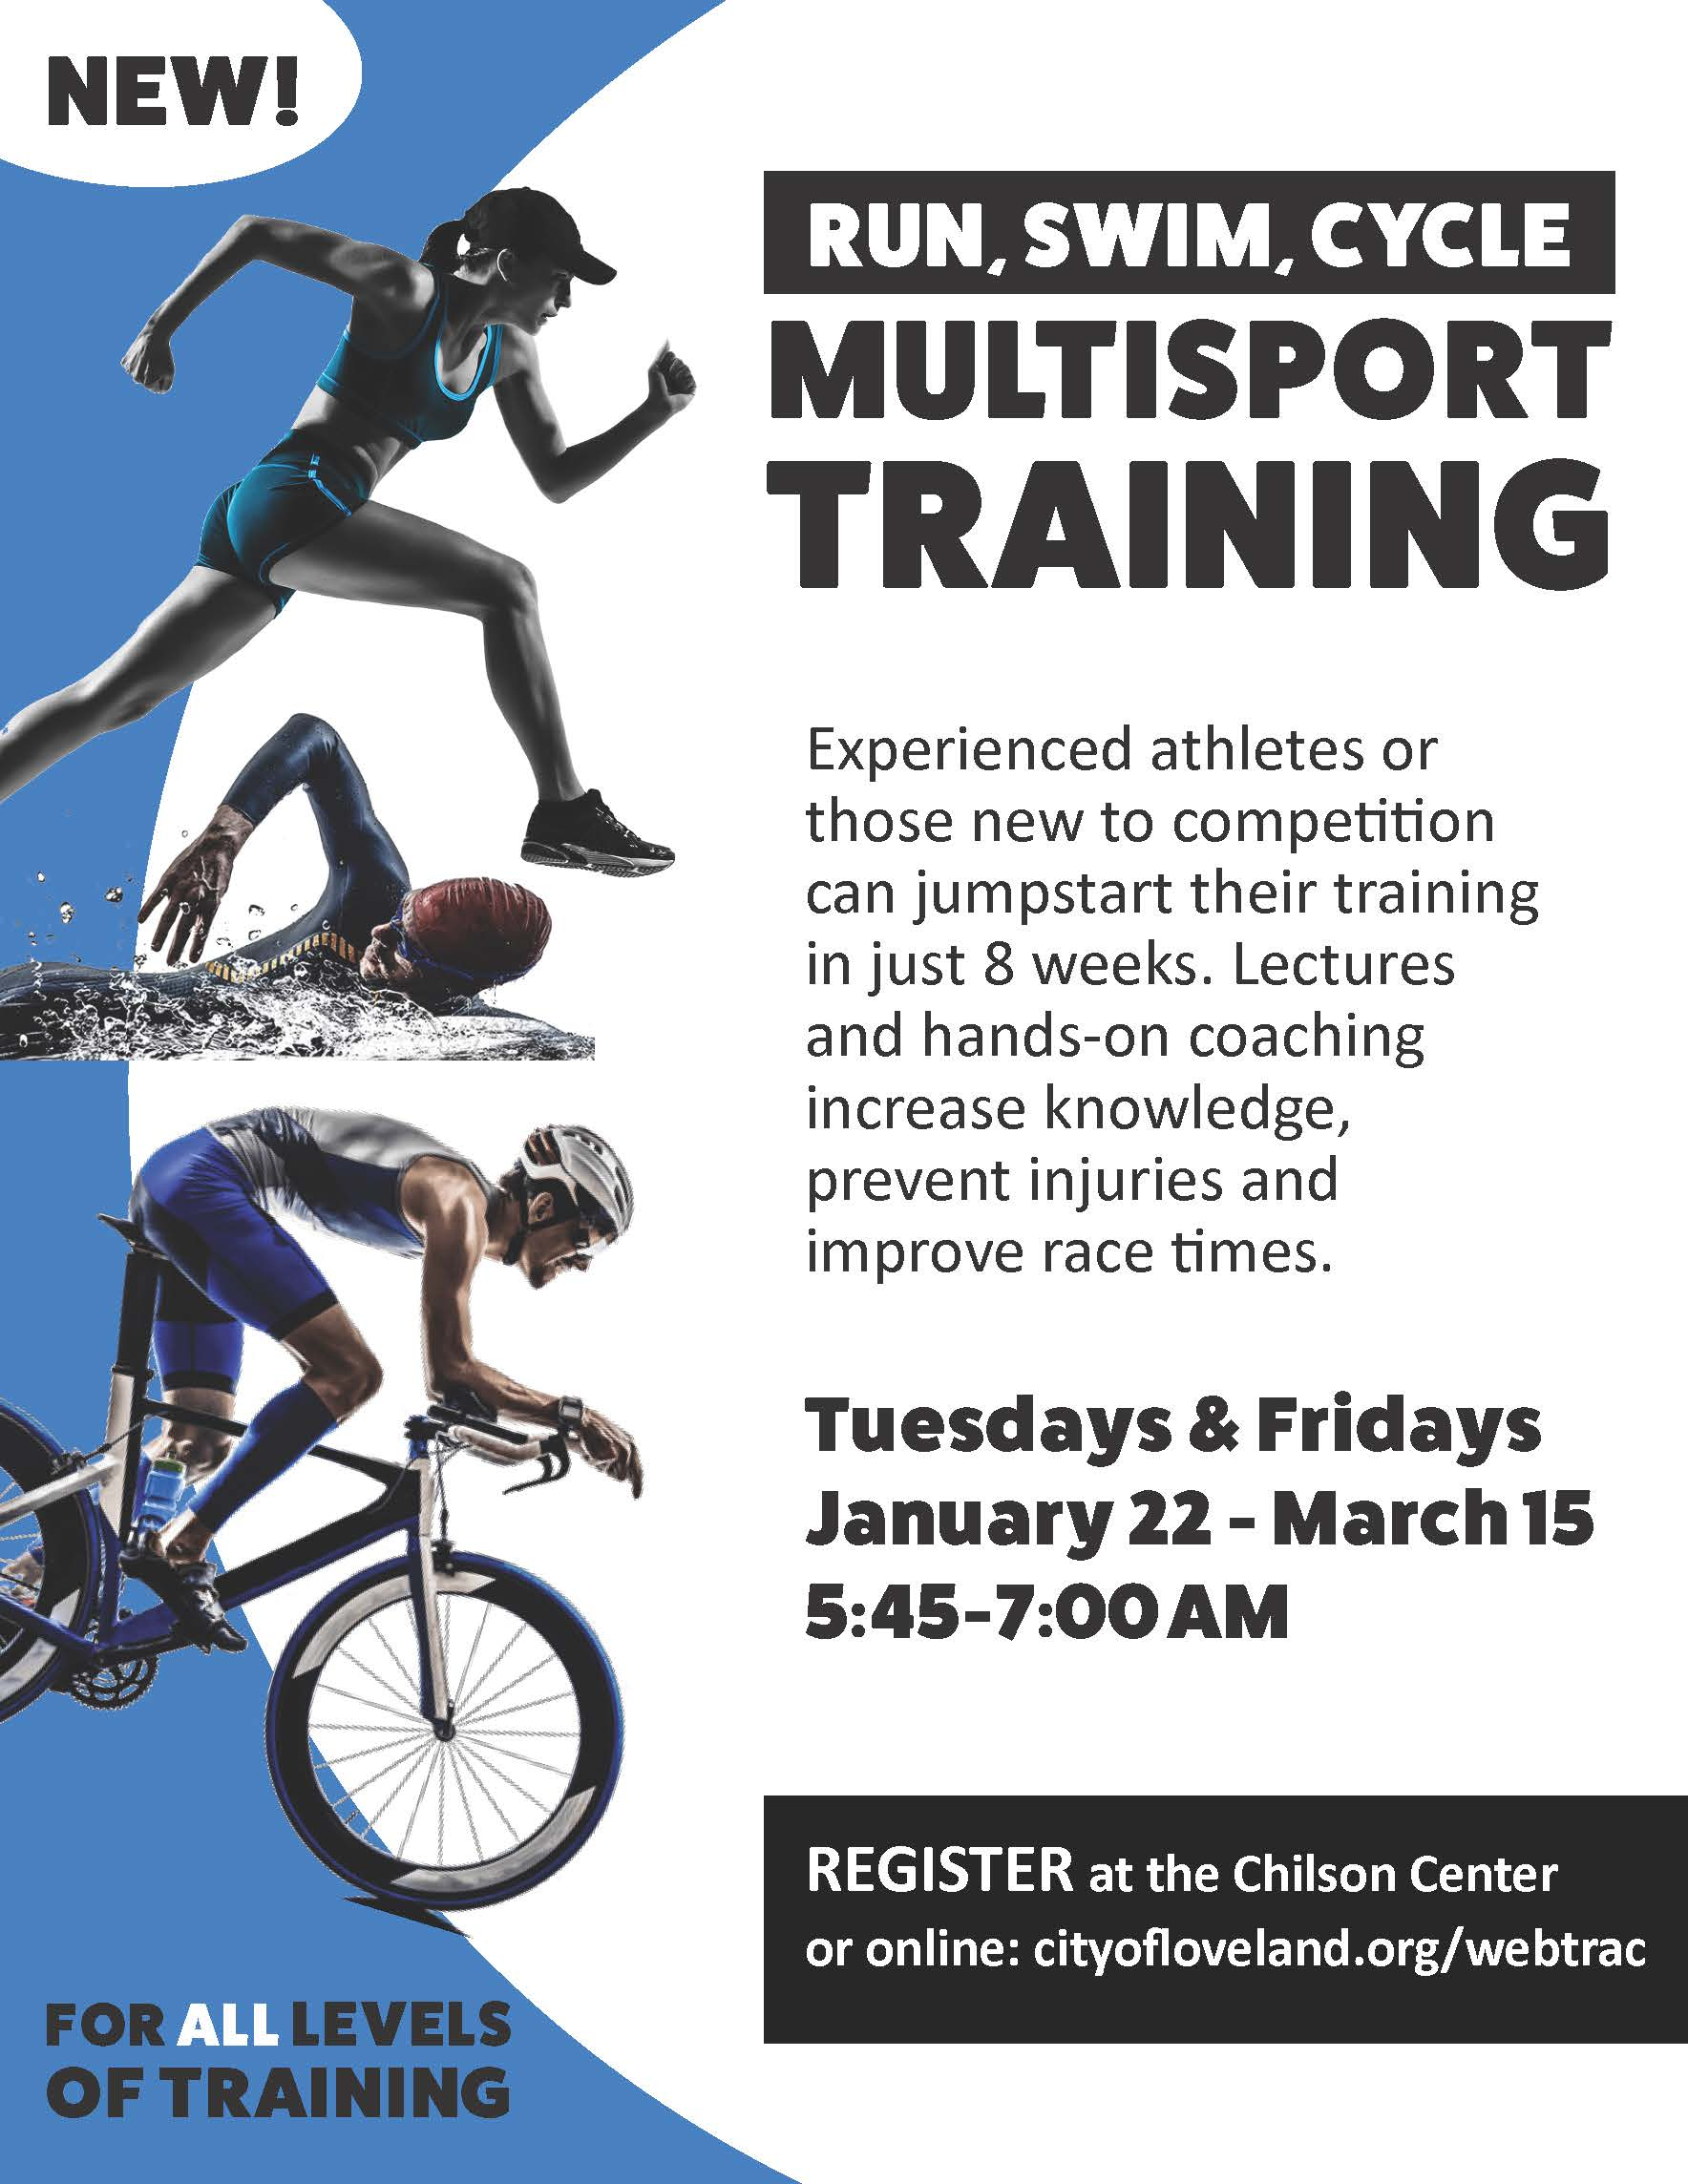 multisport training for swimmers, cyclists and runners